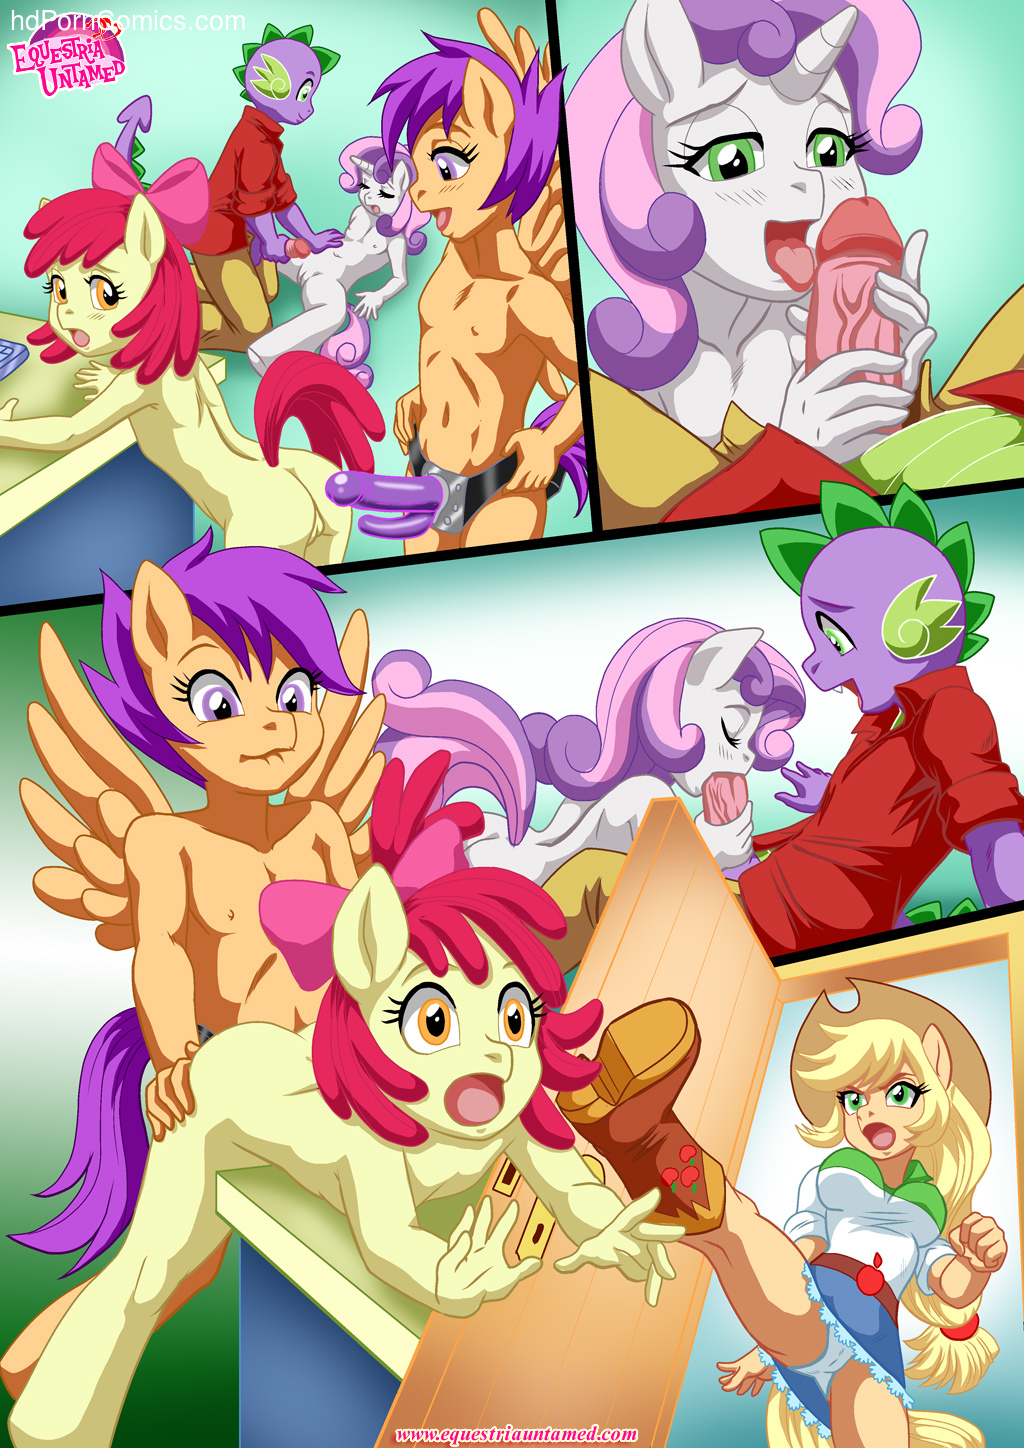 Also Rarity (My Little Pony Friendship Is Magic) - Porncomics14 free sex comic